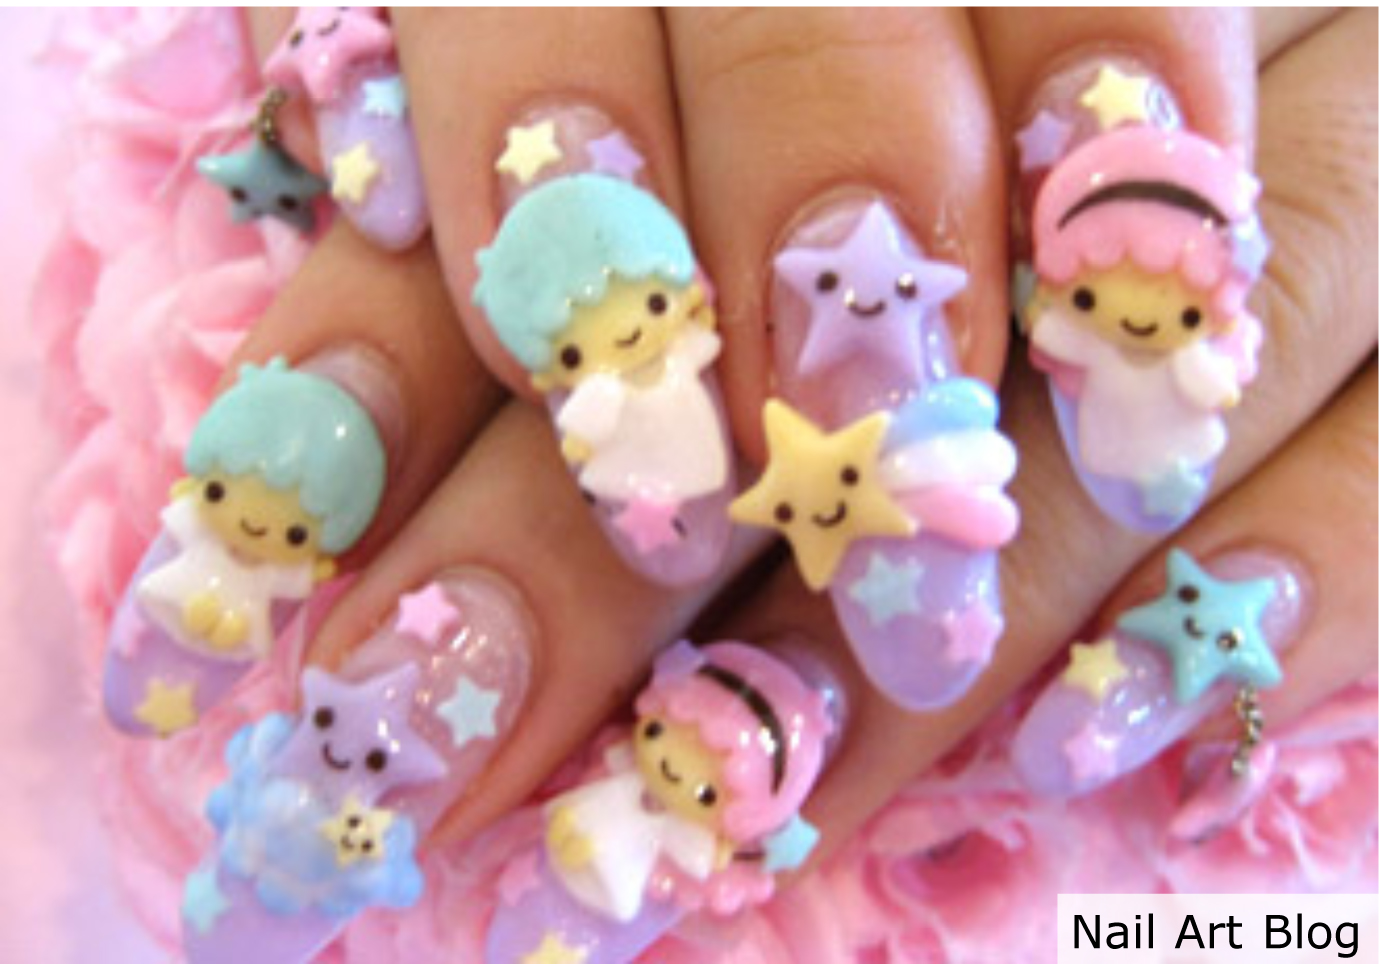 Nail Art Designs: Breathtaking Nail Art Designs